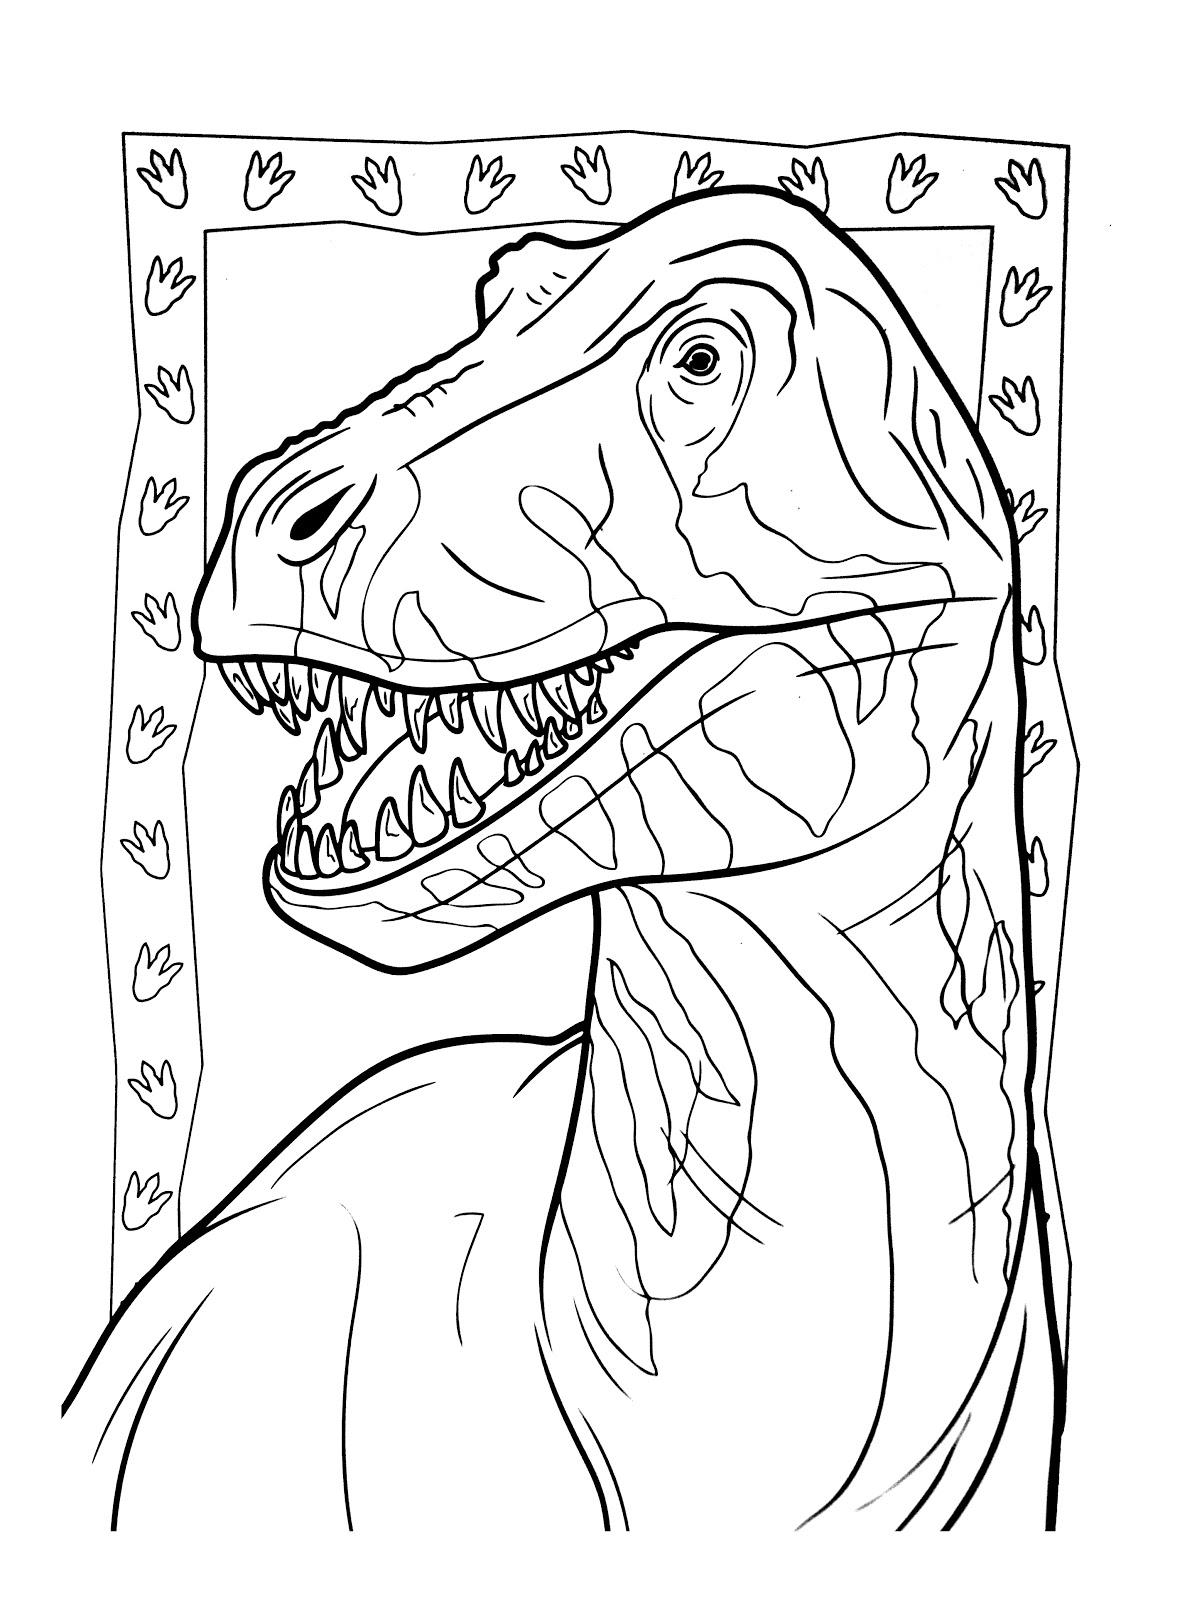 Dinosaurs coloring pages 37